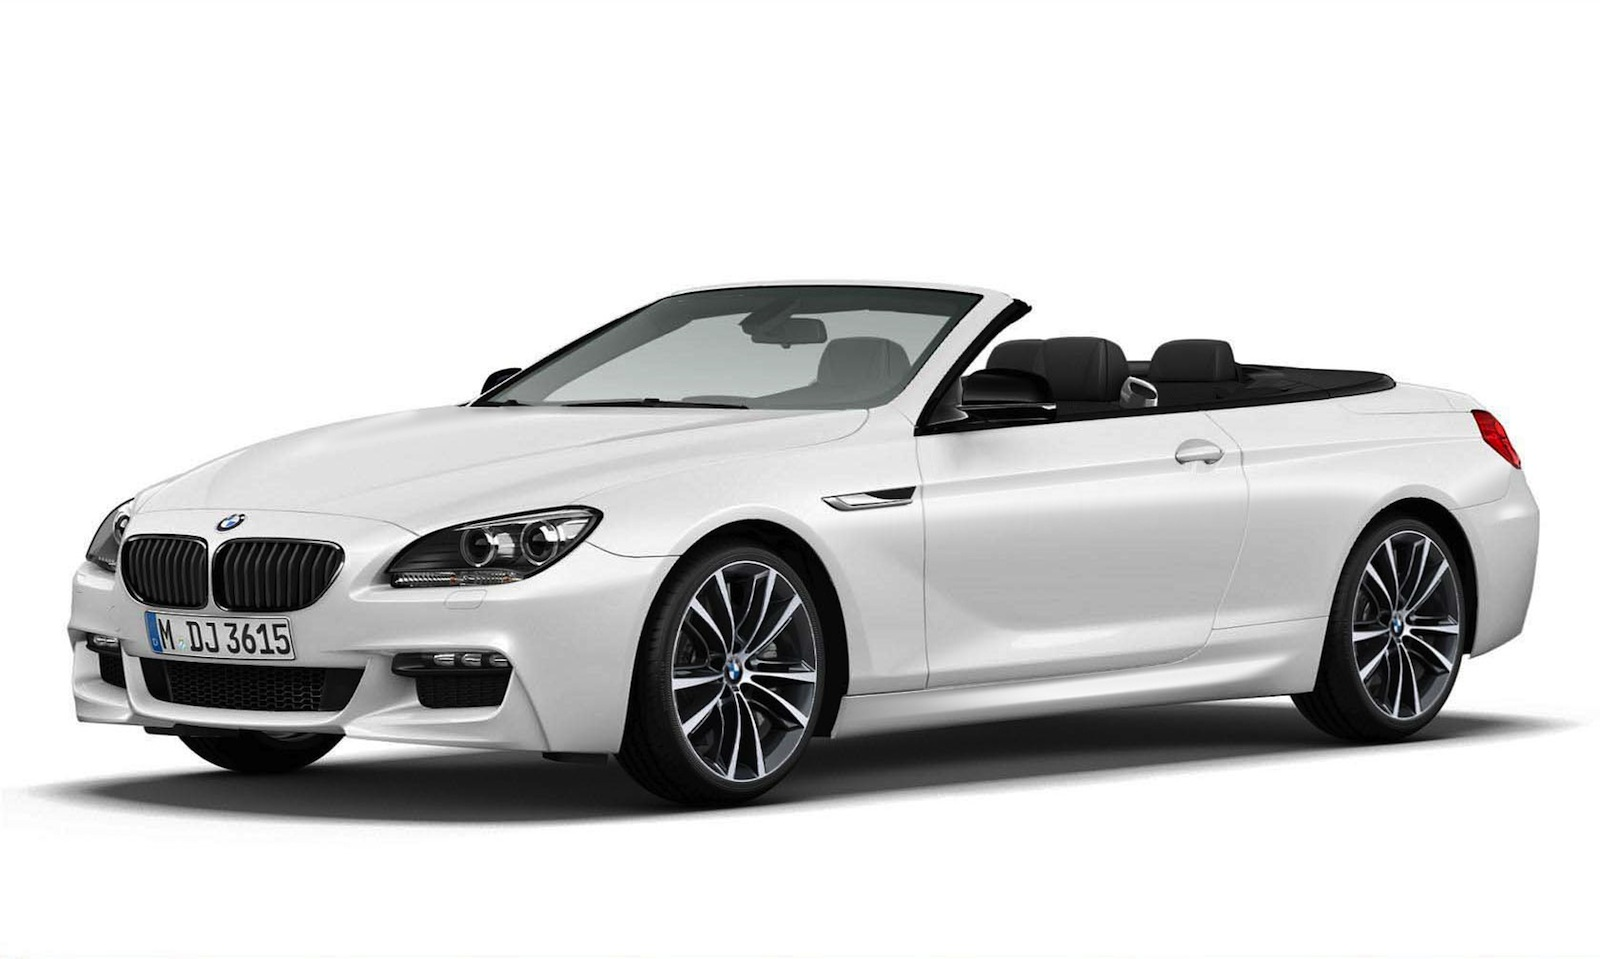 2014 bmw 6 series 6 series gran coupe and m6 preview for Mercedes benz 650i